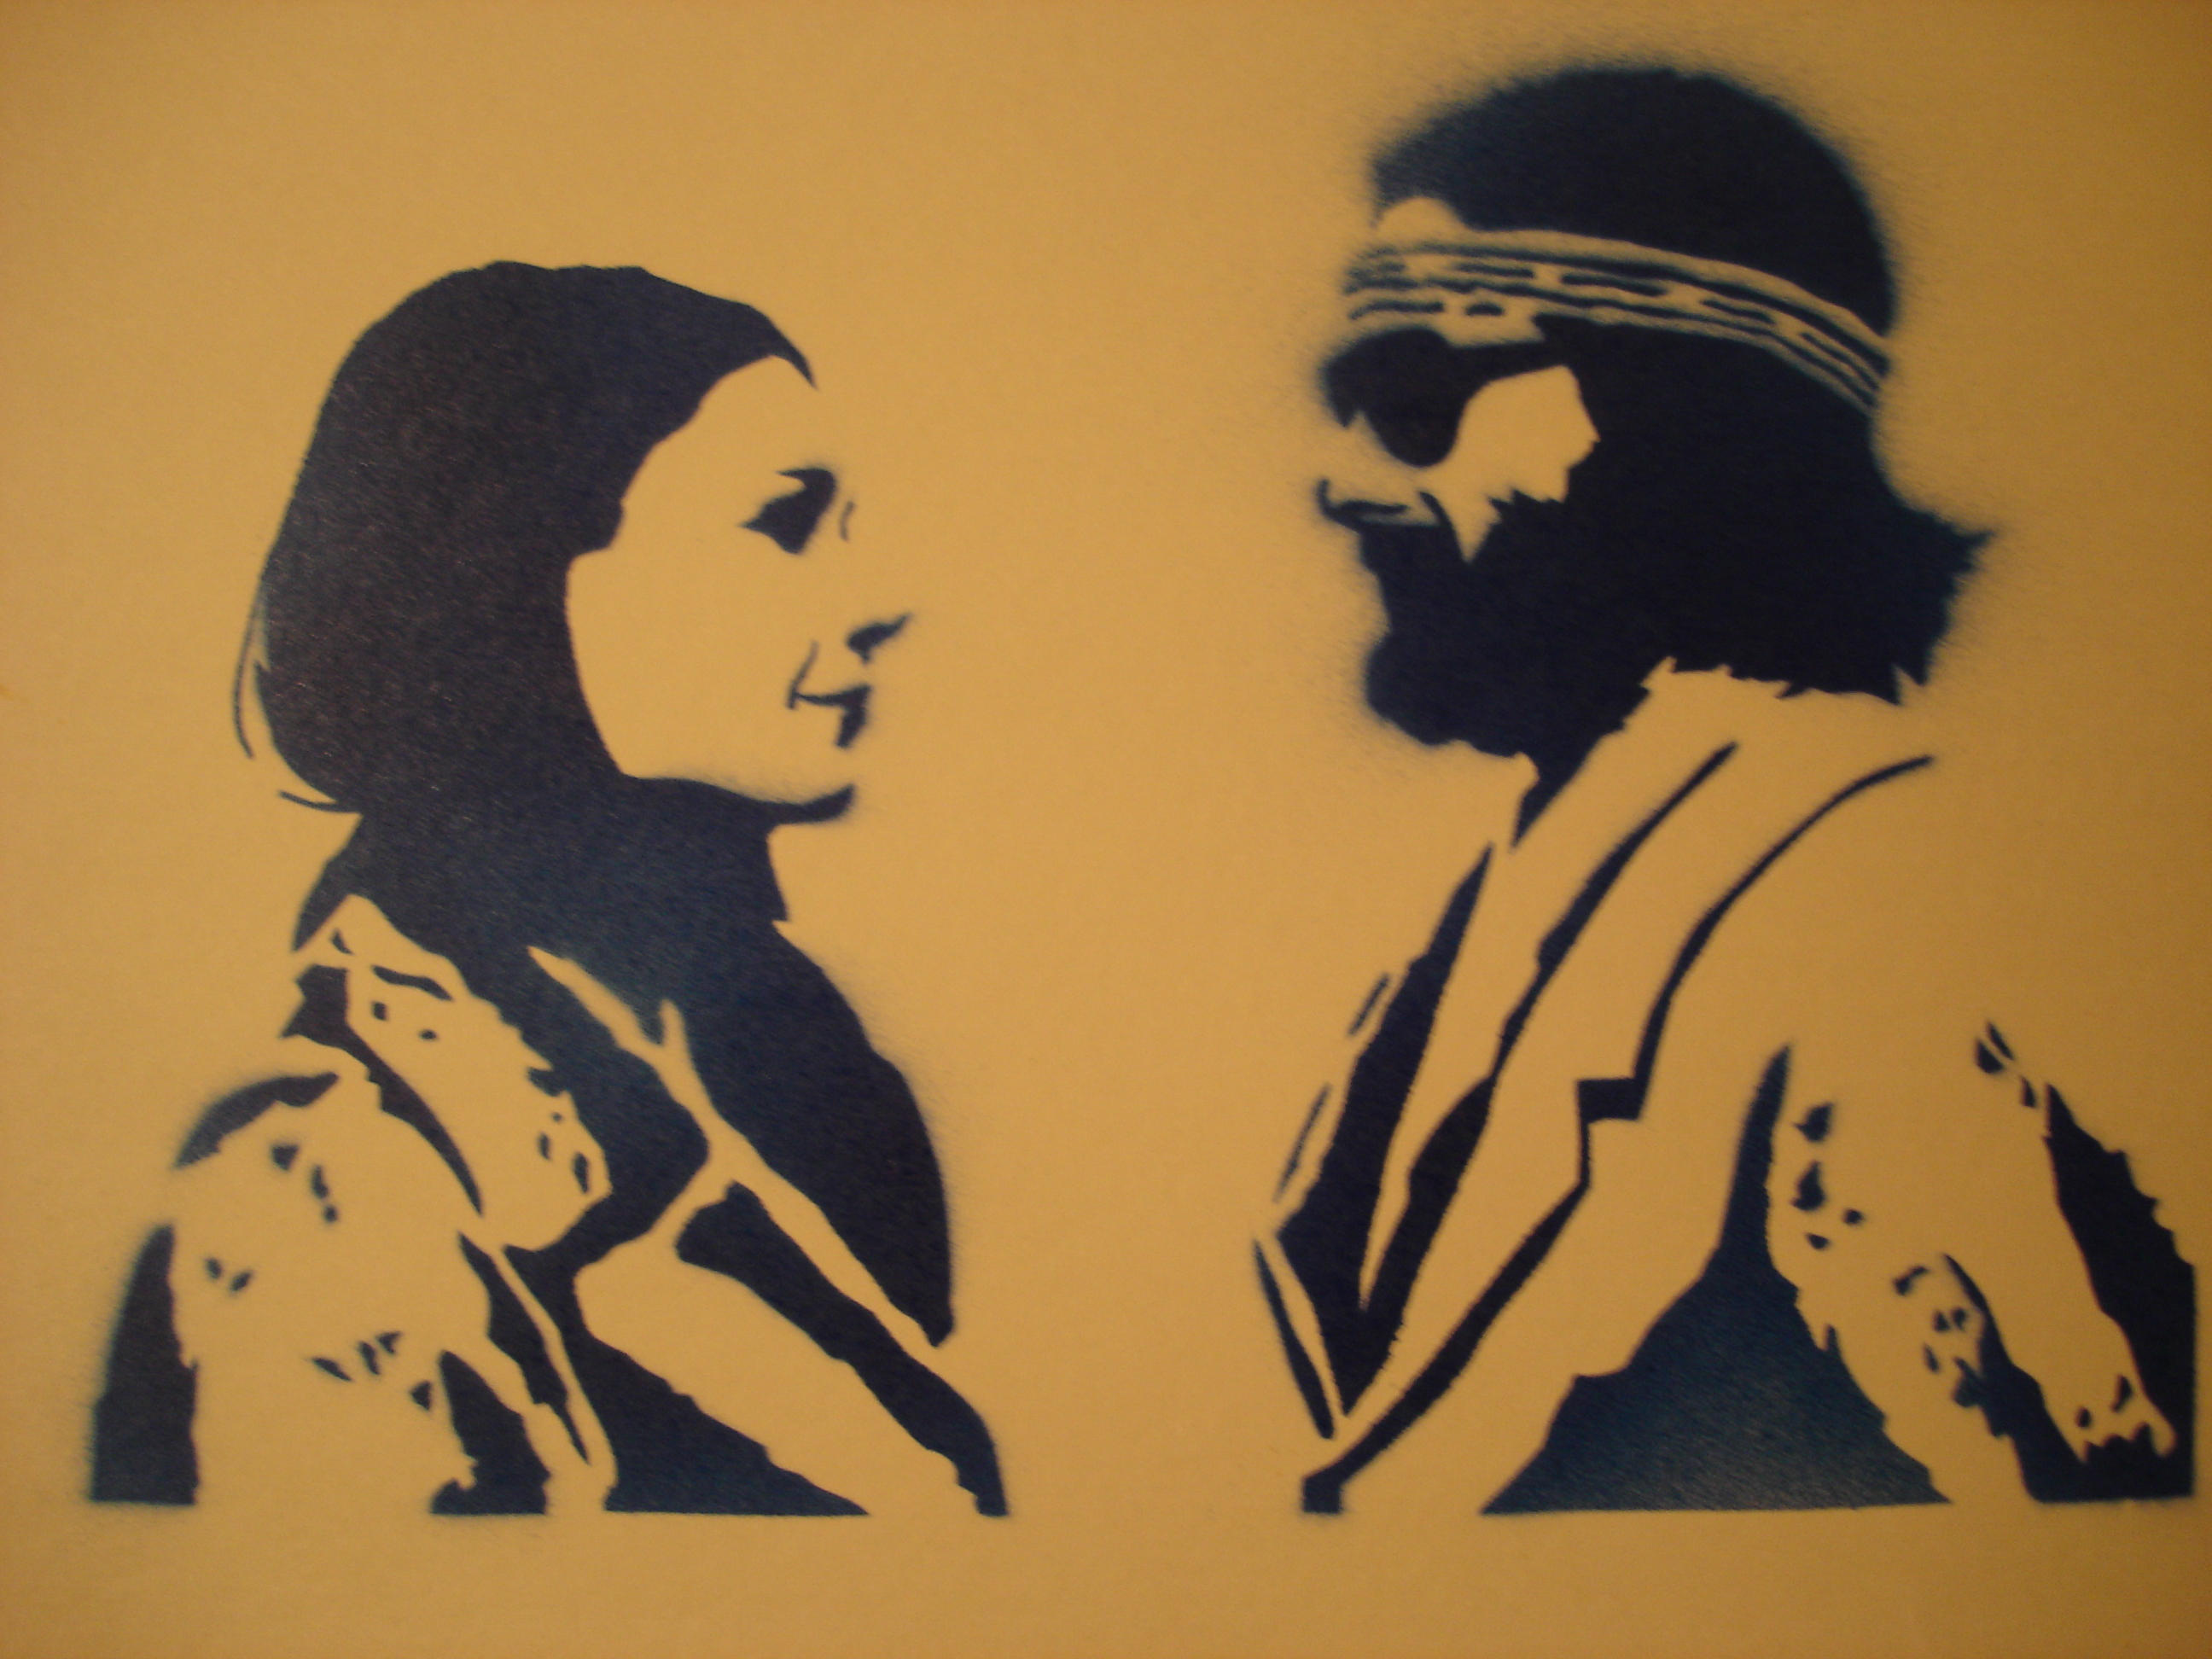 Margot and Richie Tenenbaum by incubus72787 on DeviantArt